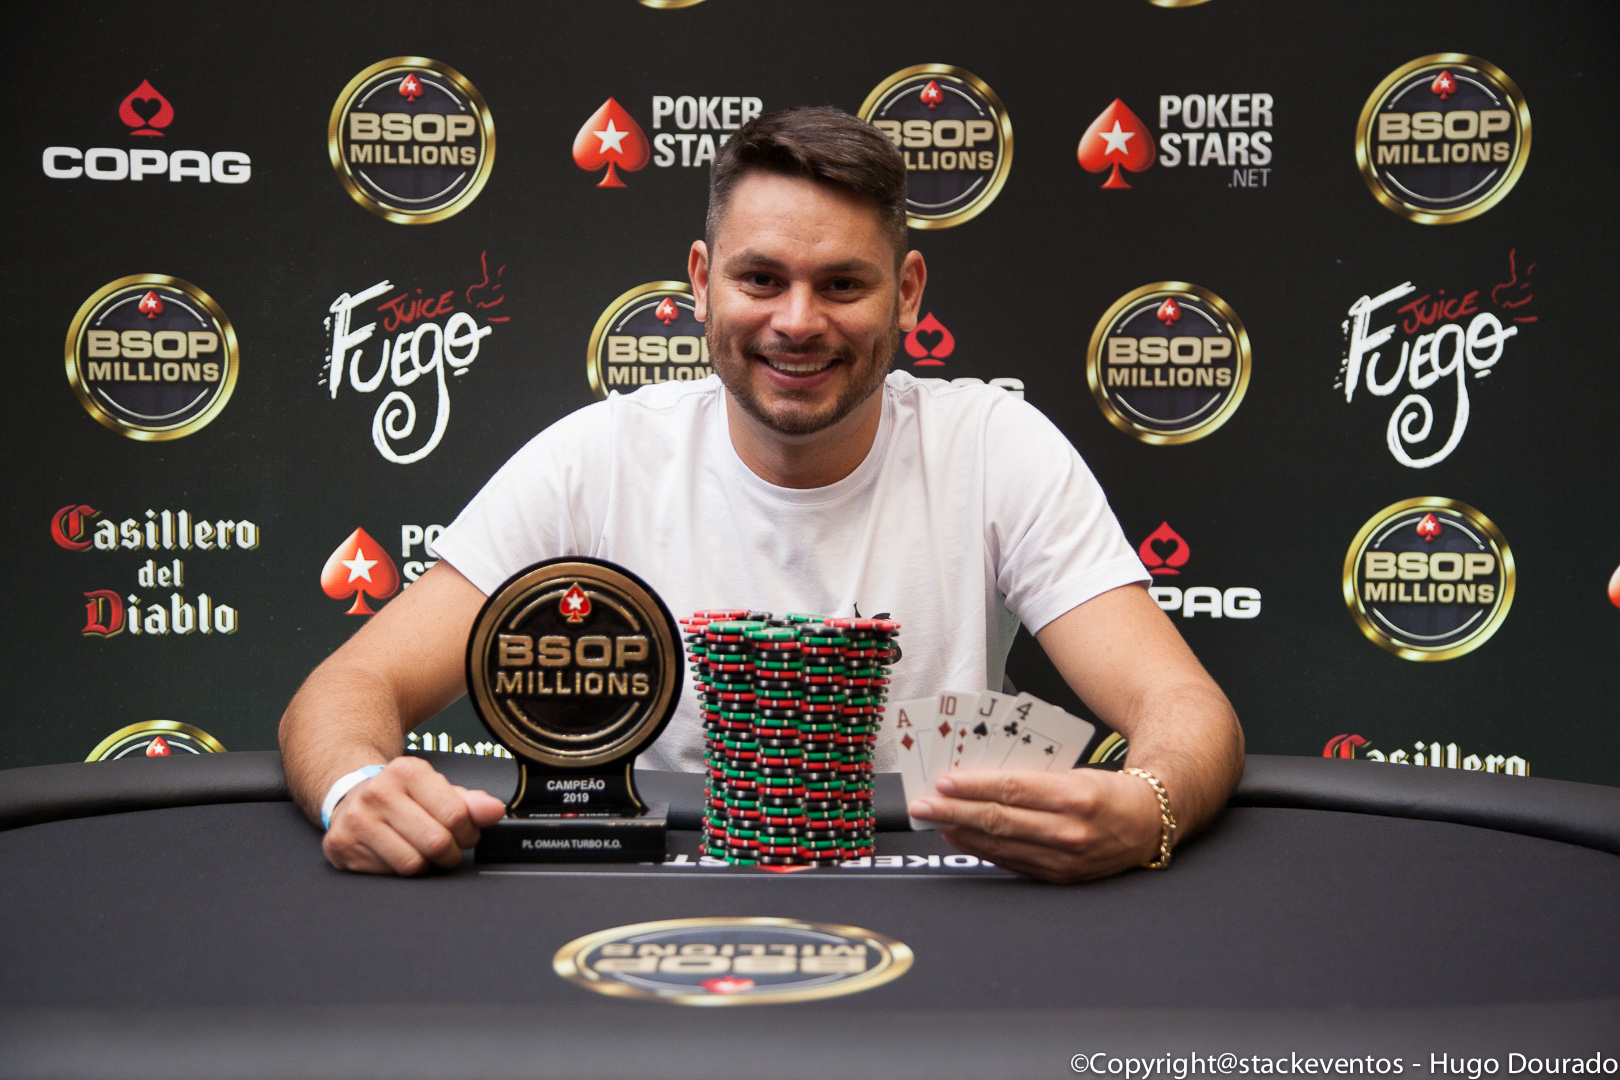 Jonathan Batista campeão do Pot-Limit Omaha Turbo Knockout do BSOP Millions